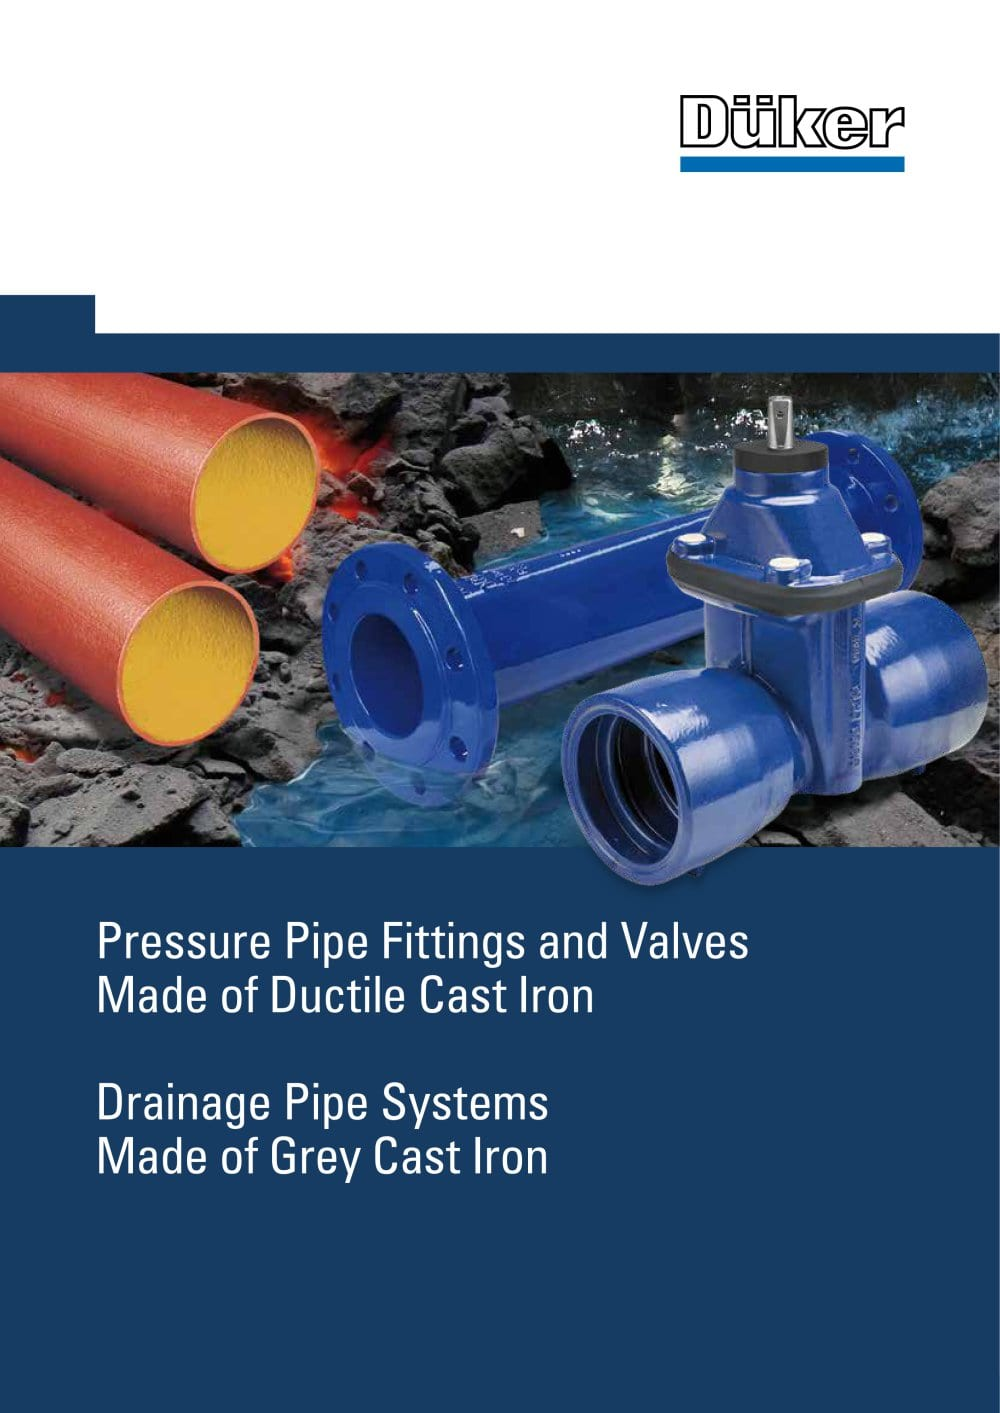 Pressure Pipe Fittings and Valves - 1 / 11 Pages  sc 1 st  Catalogues Directindustry & Pressure Pipe Fittings and Valves - Düker GmbH - PDF Catalogue ...